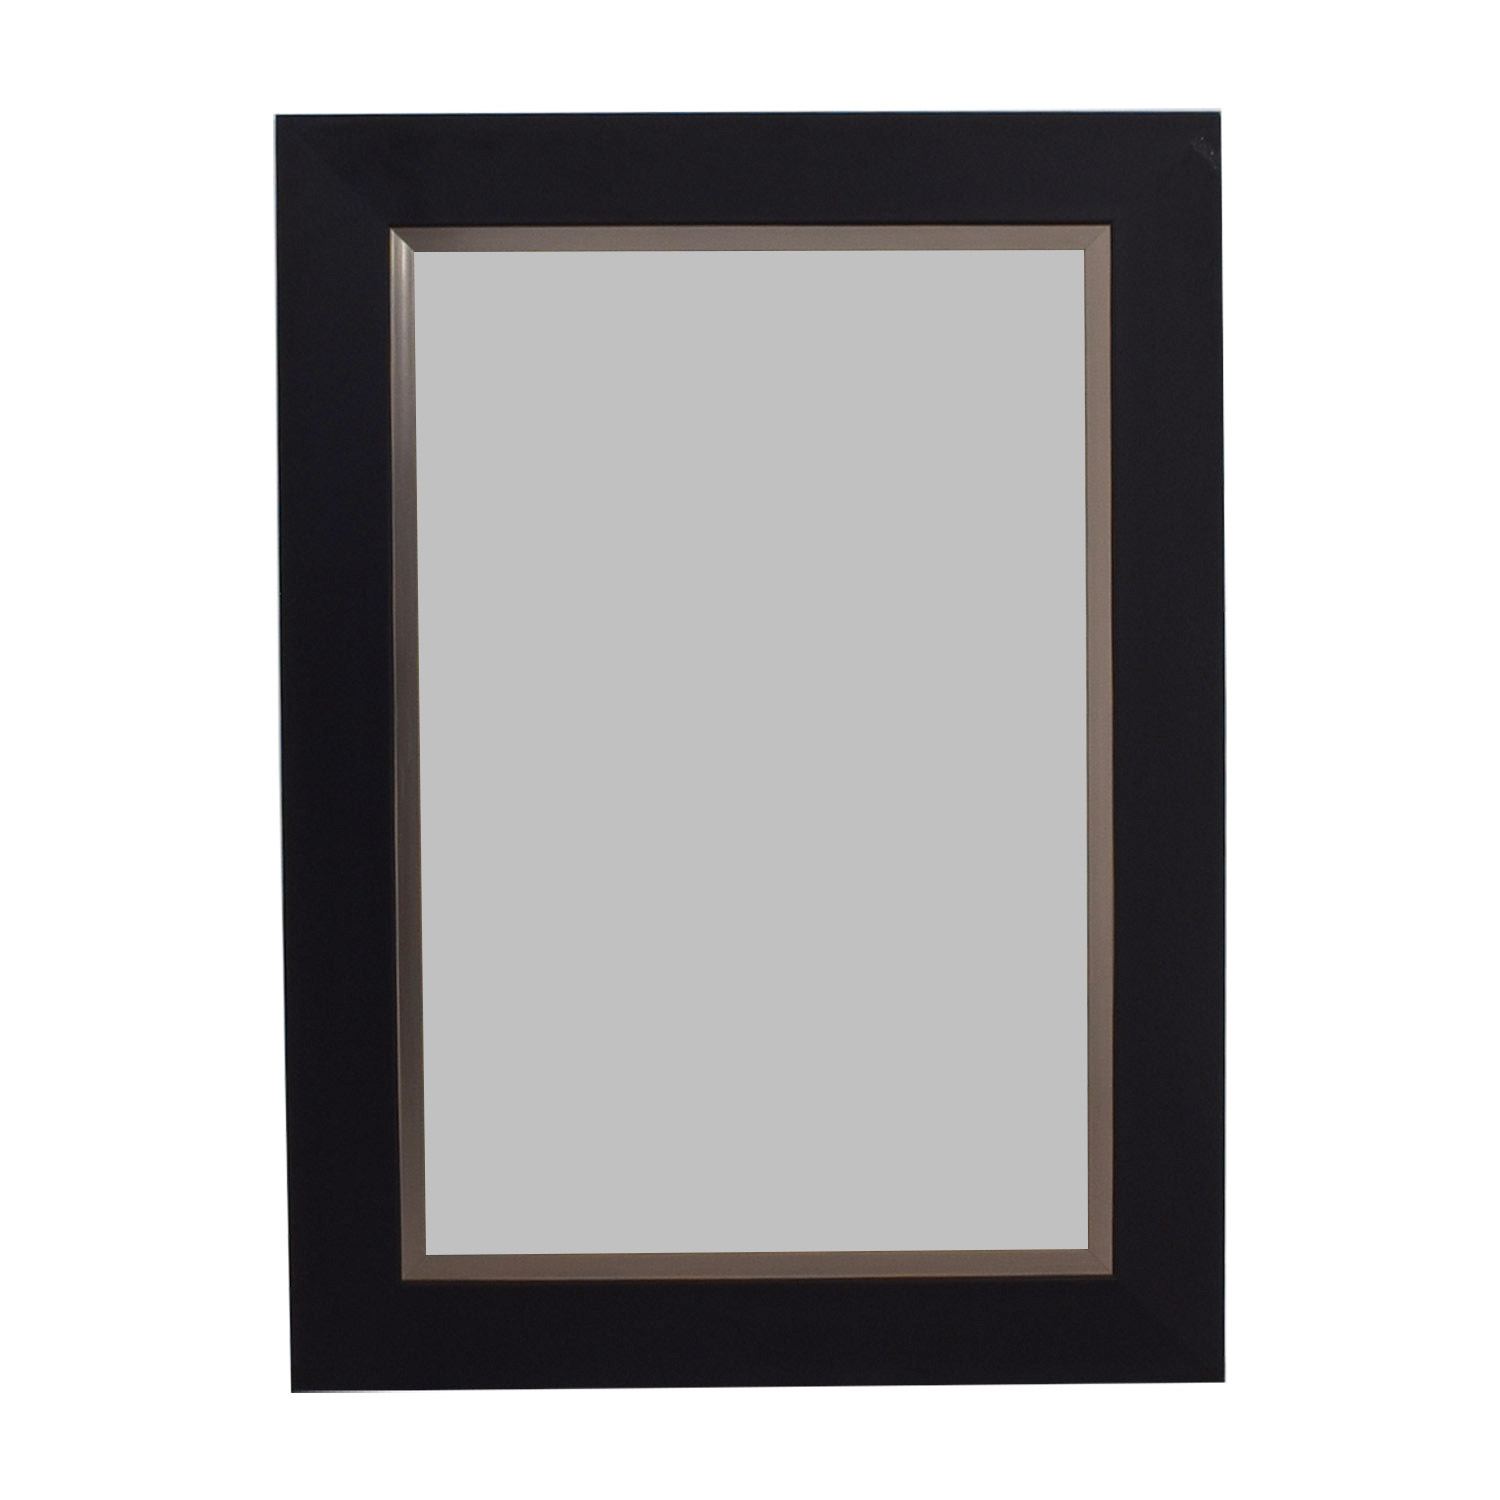 Home Goods Black Framed Wall Mirror nyc